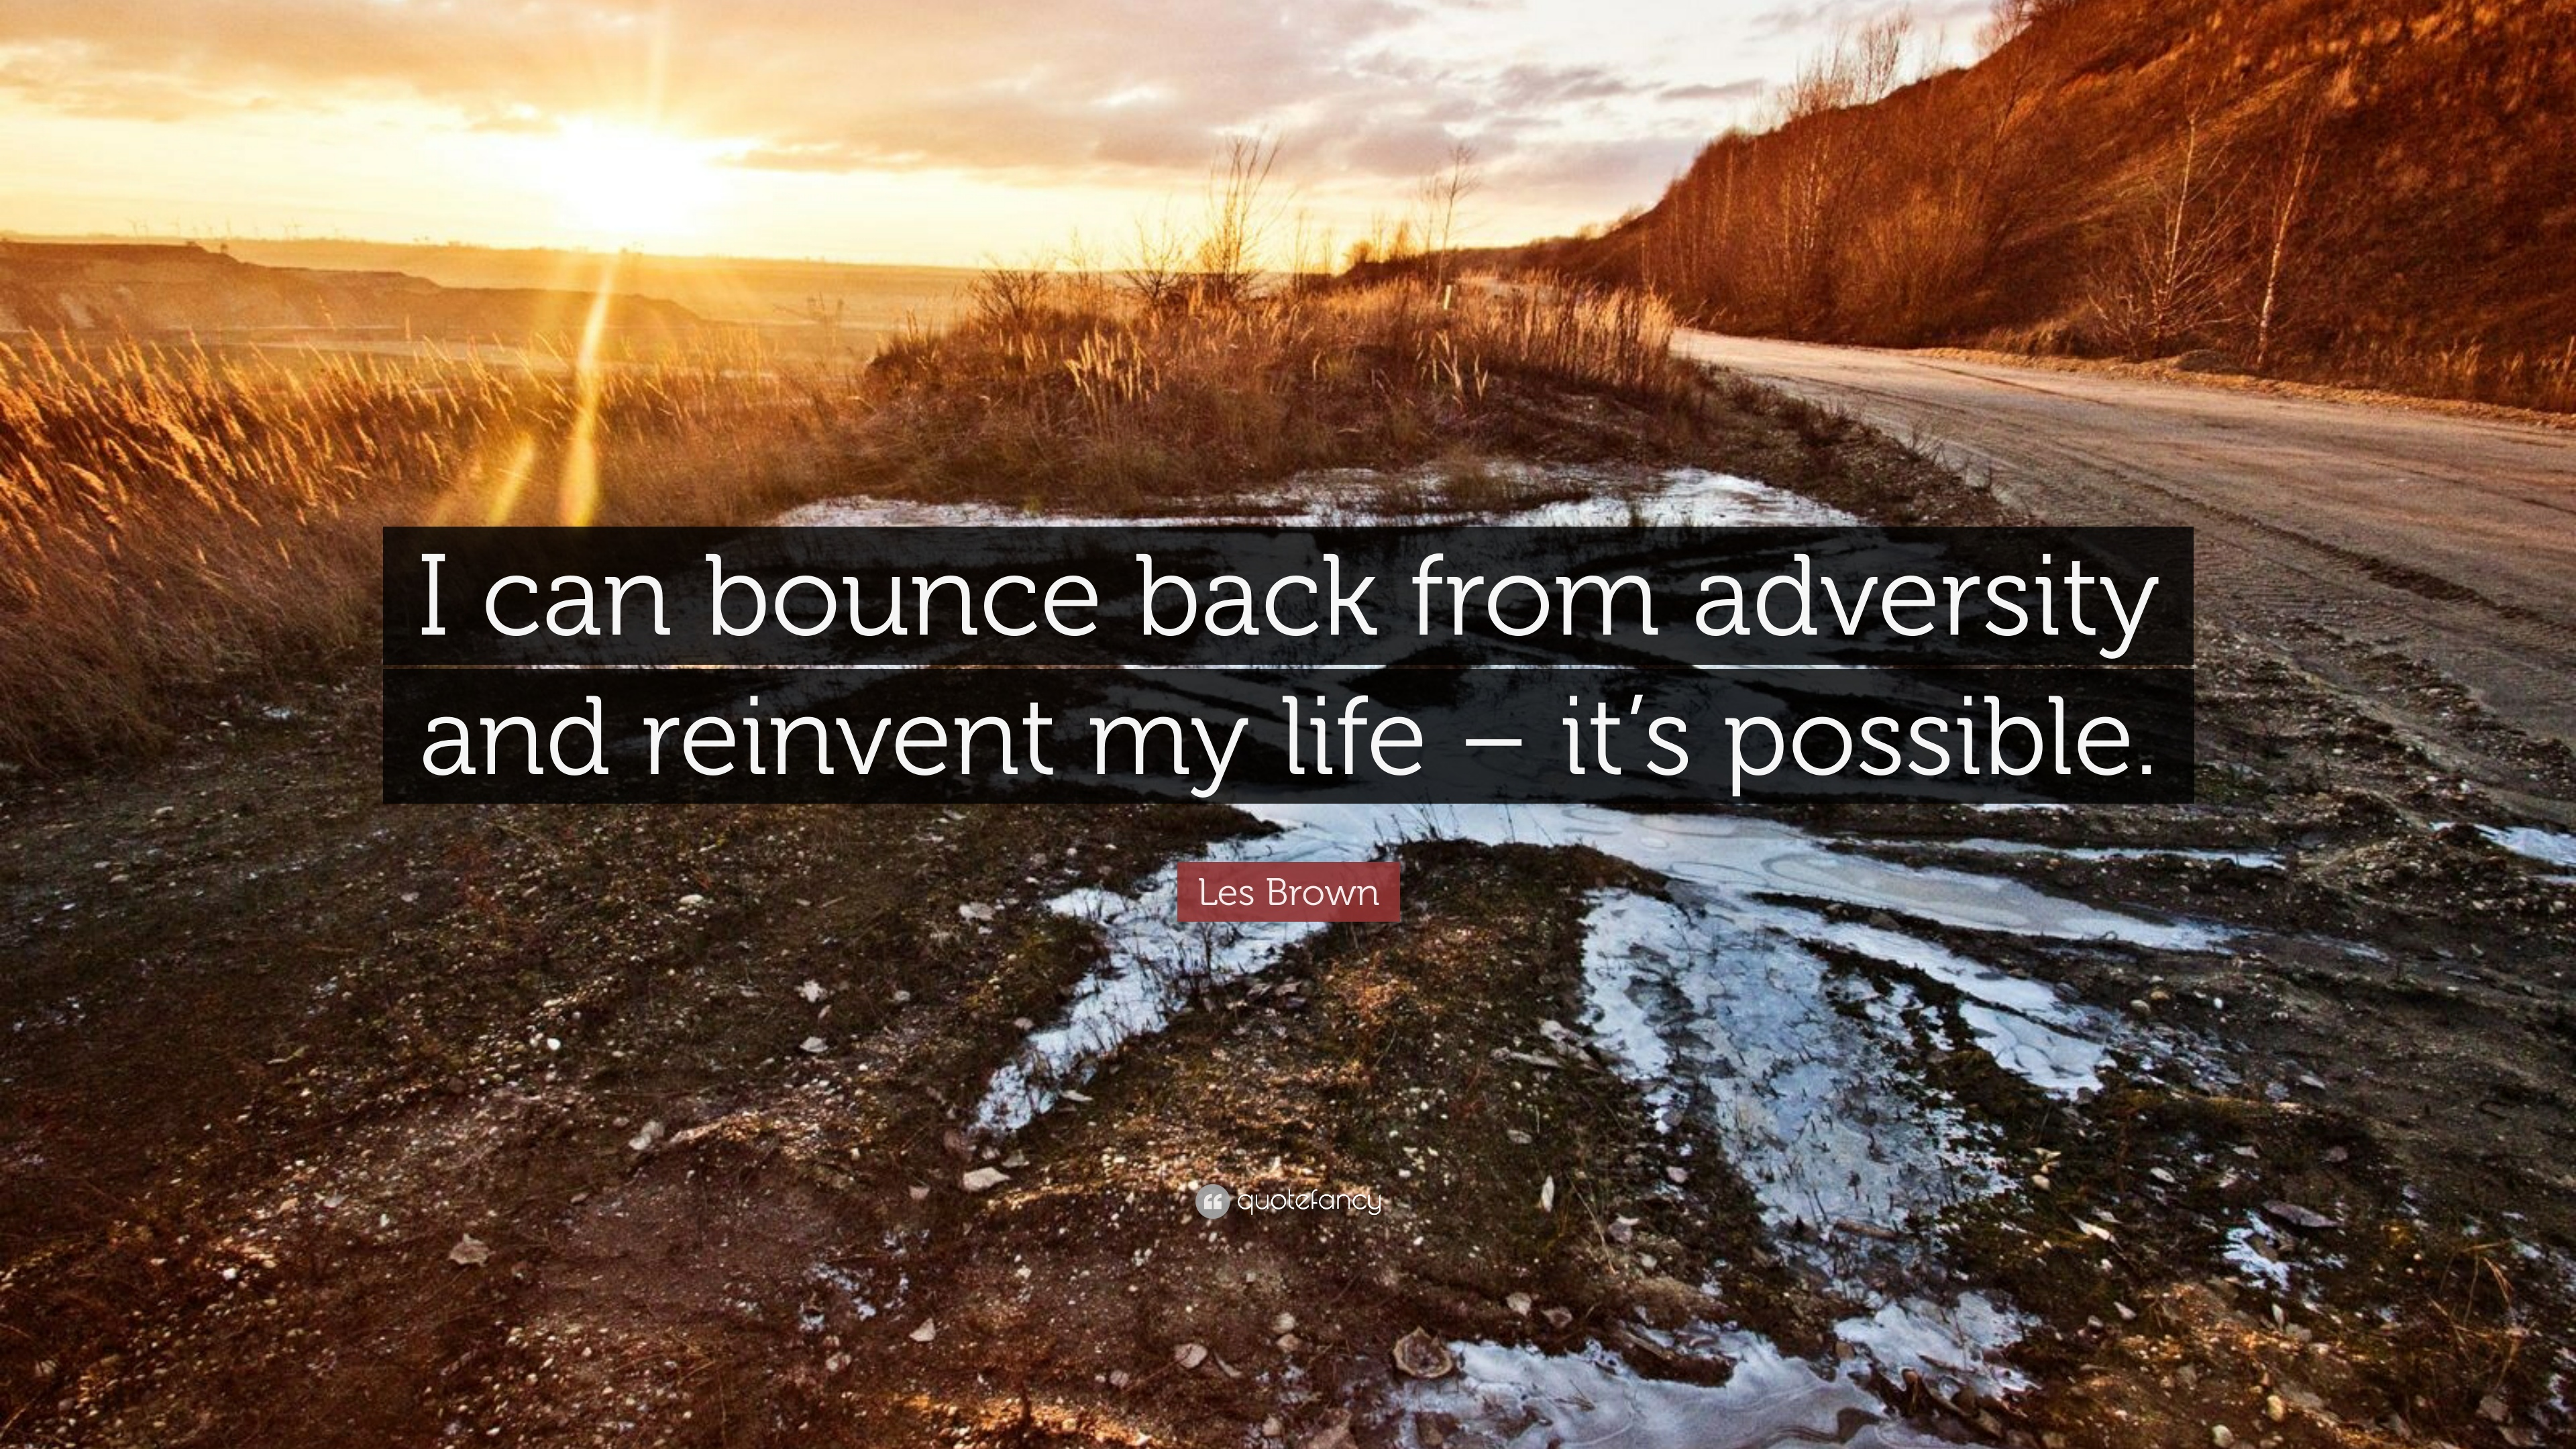 Self Improvement Quotes I Can Bounce Back From Adversity And Reinvent My Life